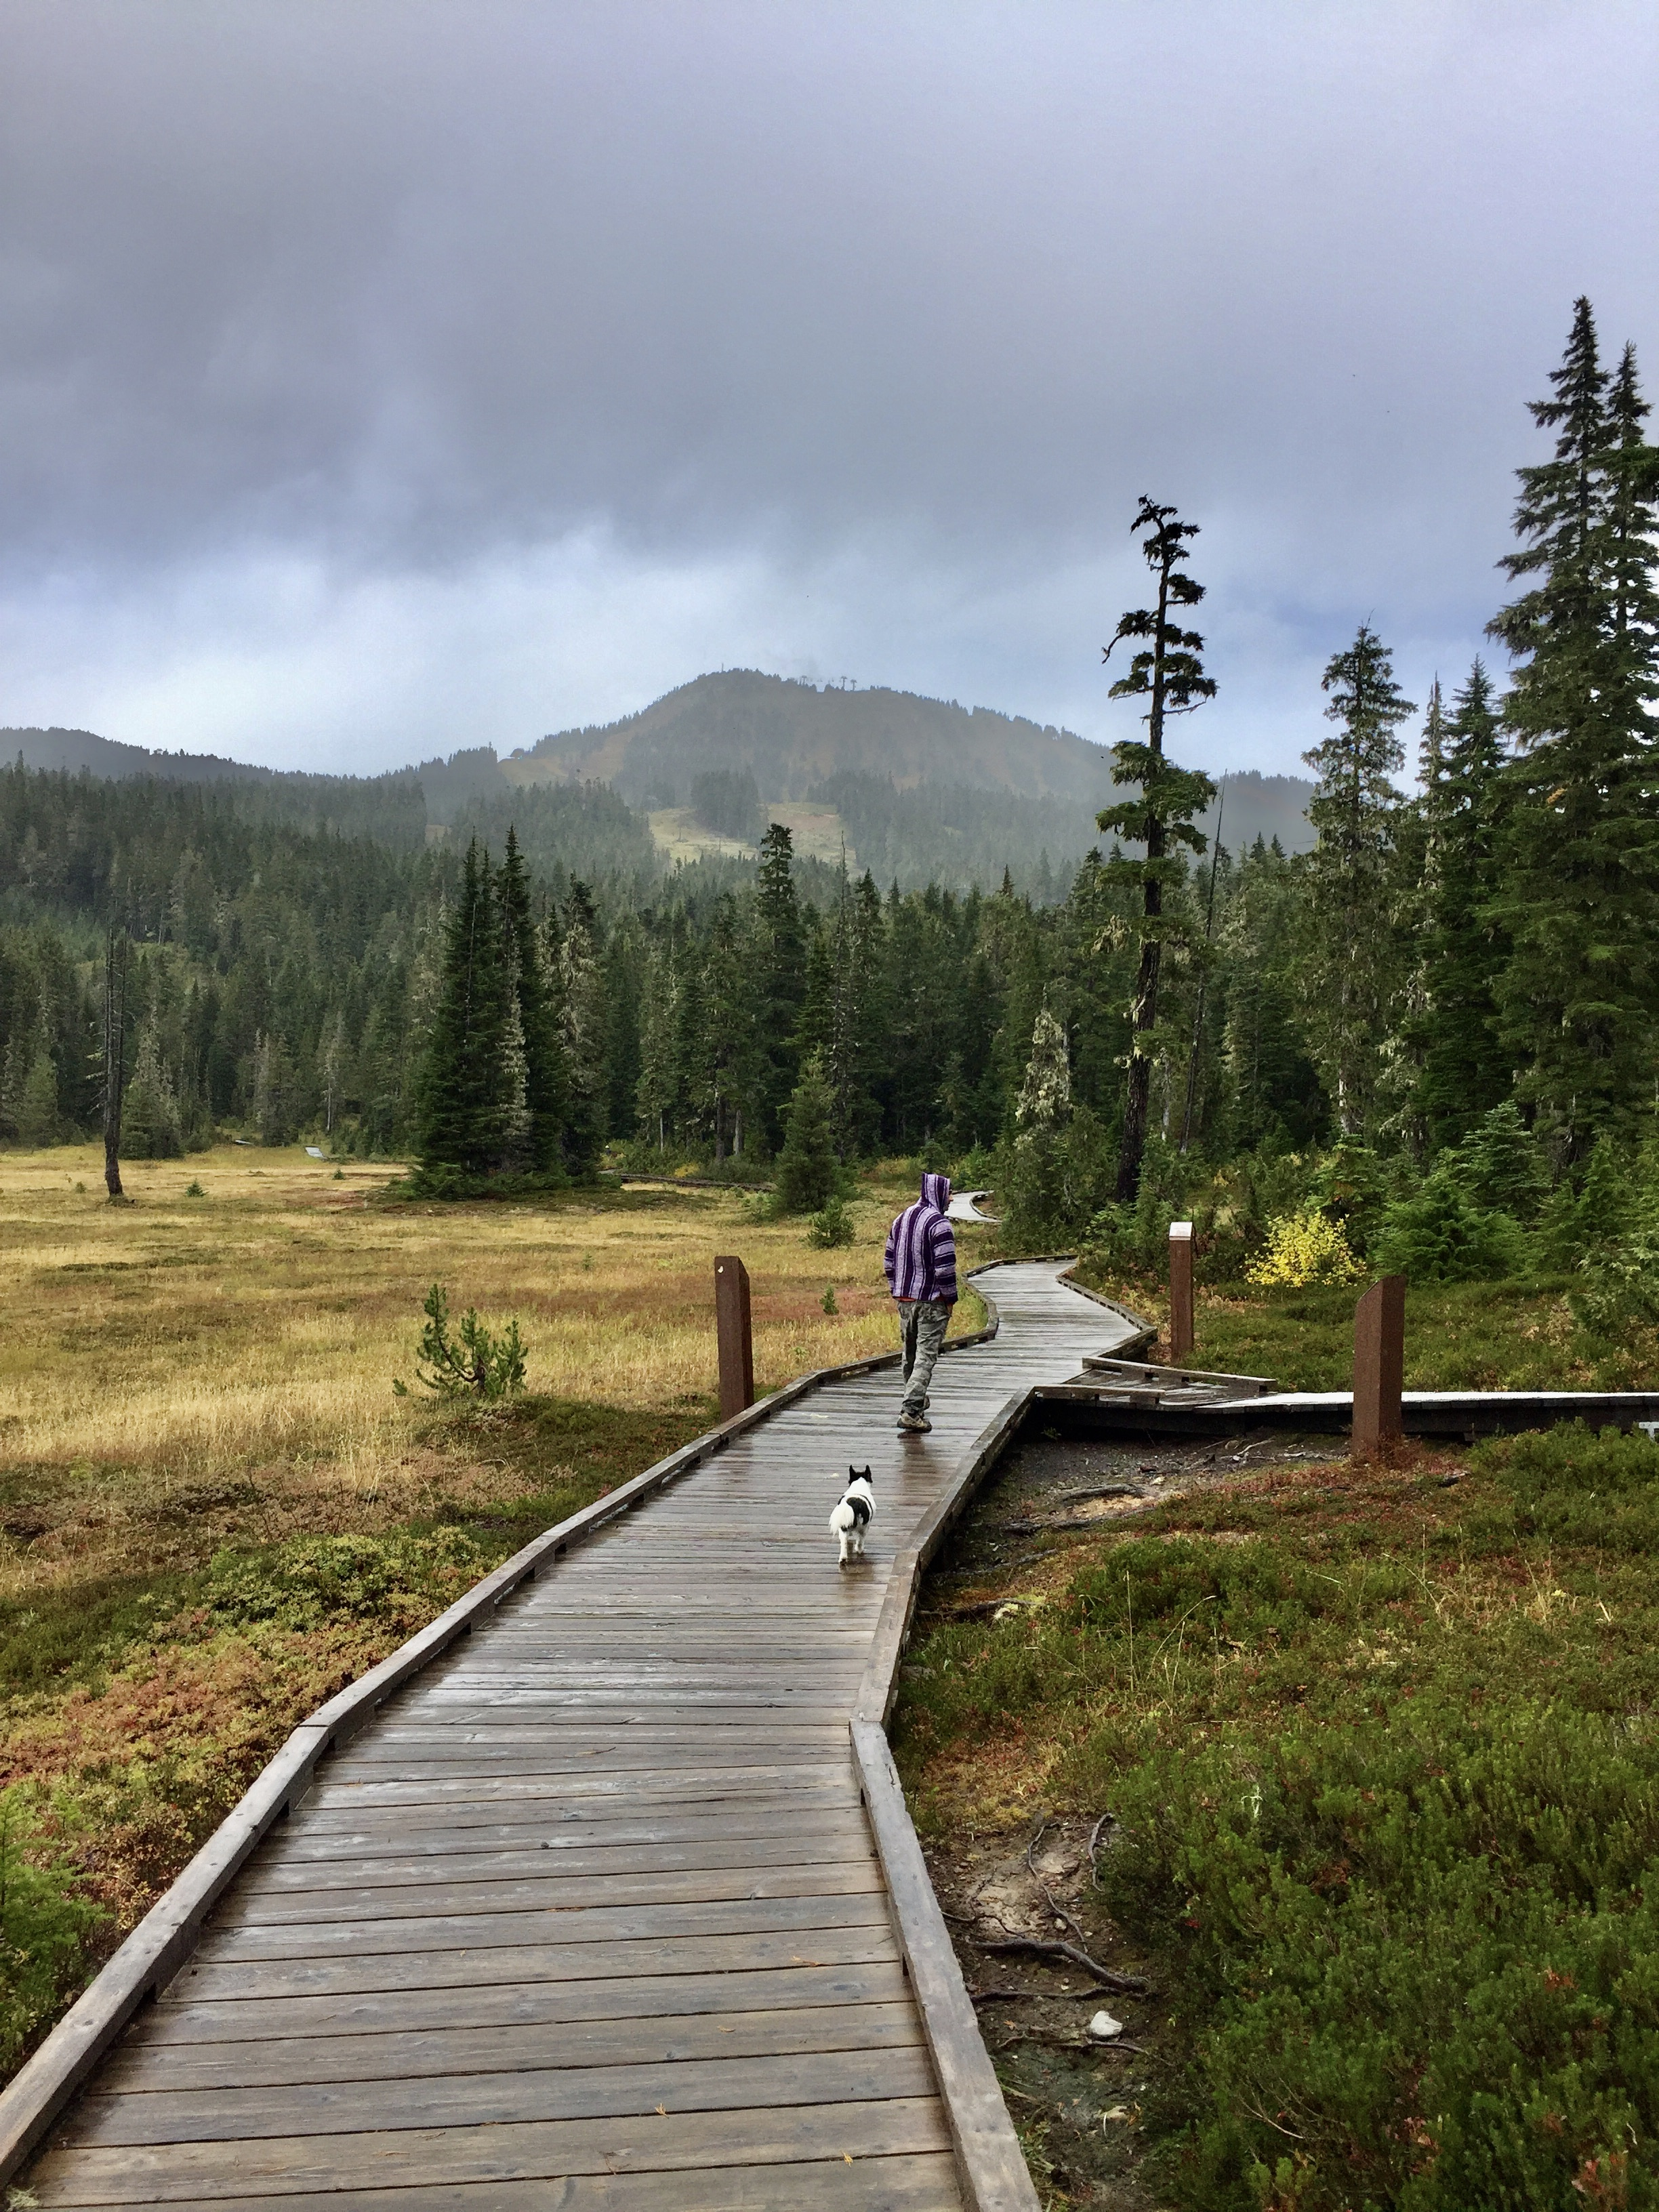 September, 2020 - Vancouver Island, British Columbia - Strathcona Provincial Park - Forbidden Plateau - Walking the second half of the loop, back to the parking lot